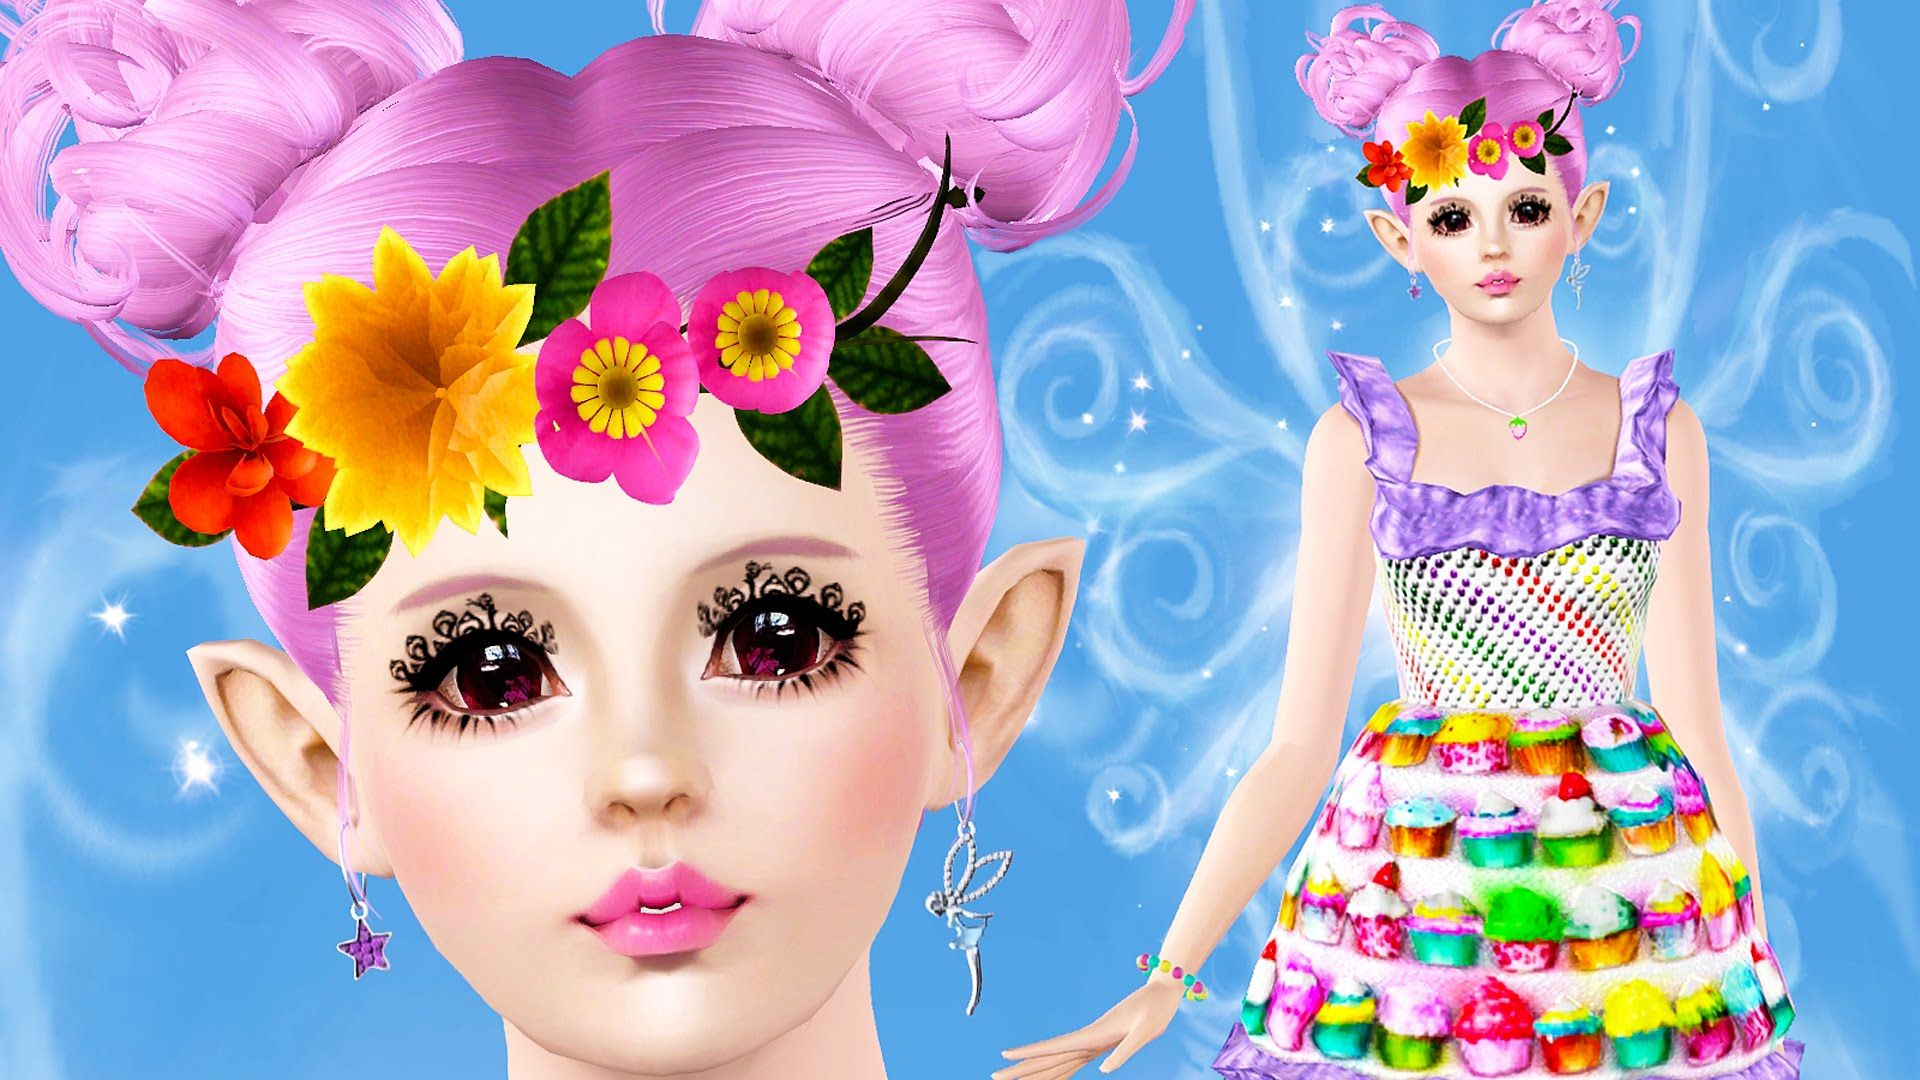 206 best images about sims 3 on pinterest dots sims 4 and warm - The Sims 3 Kawaii Girls 7 Download Sim Candy Fairy